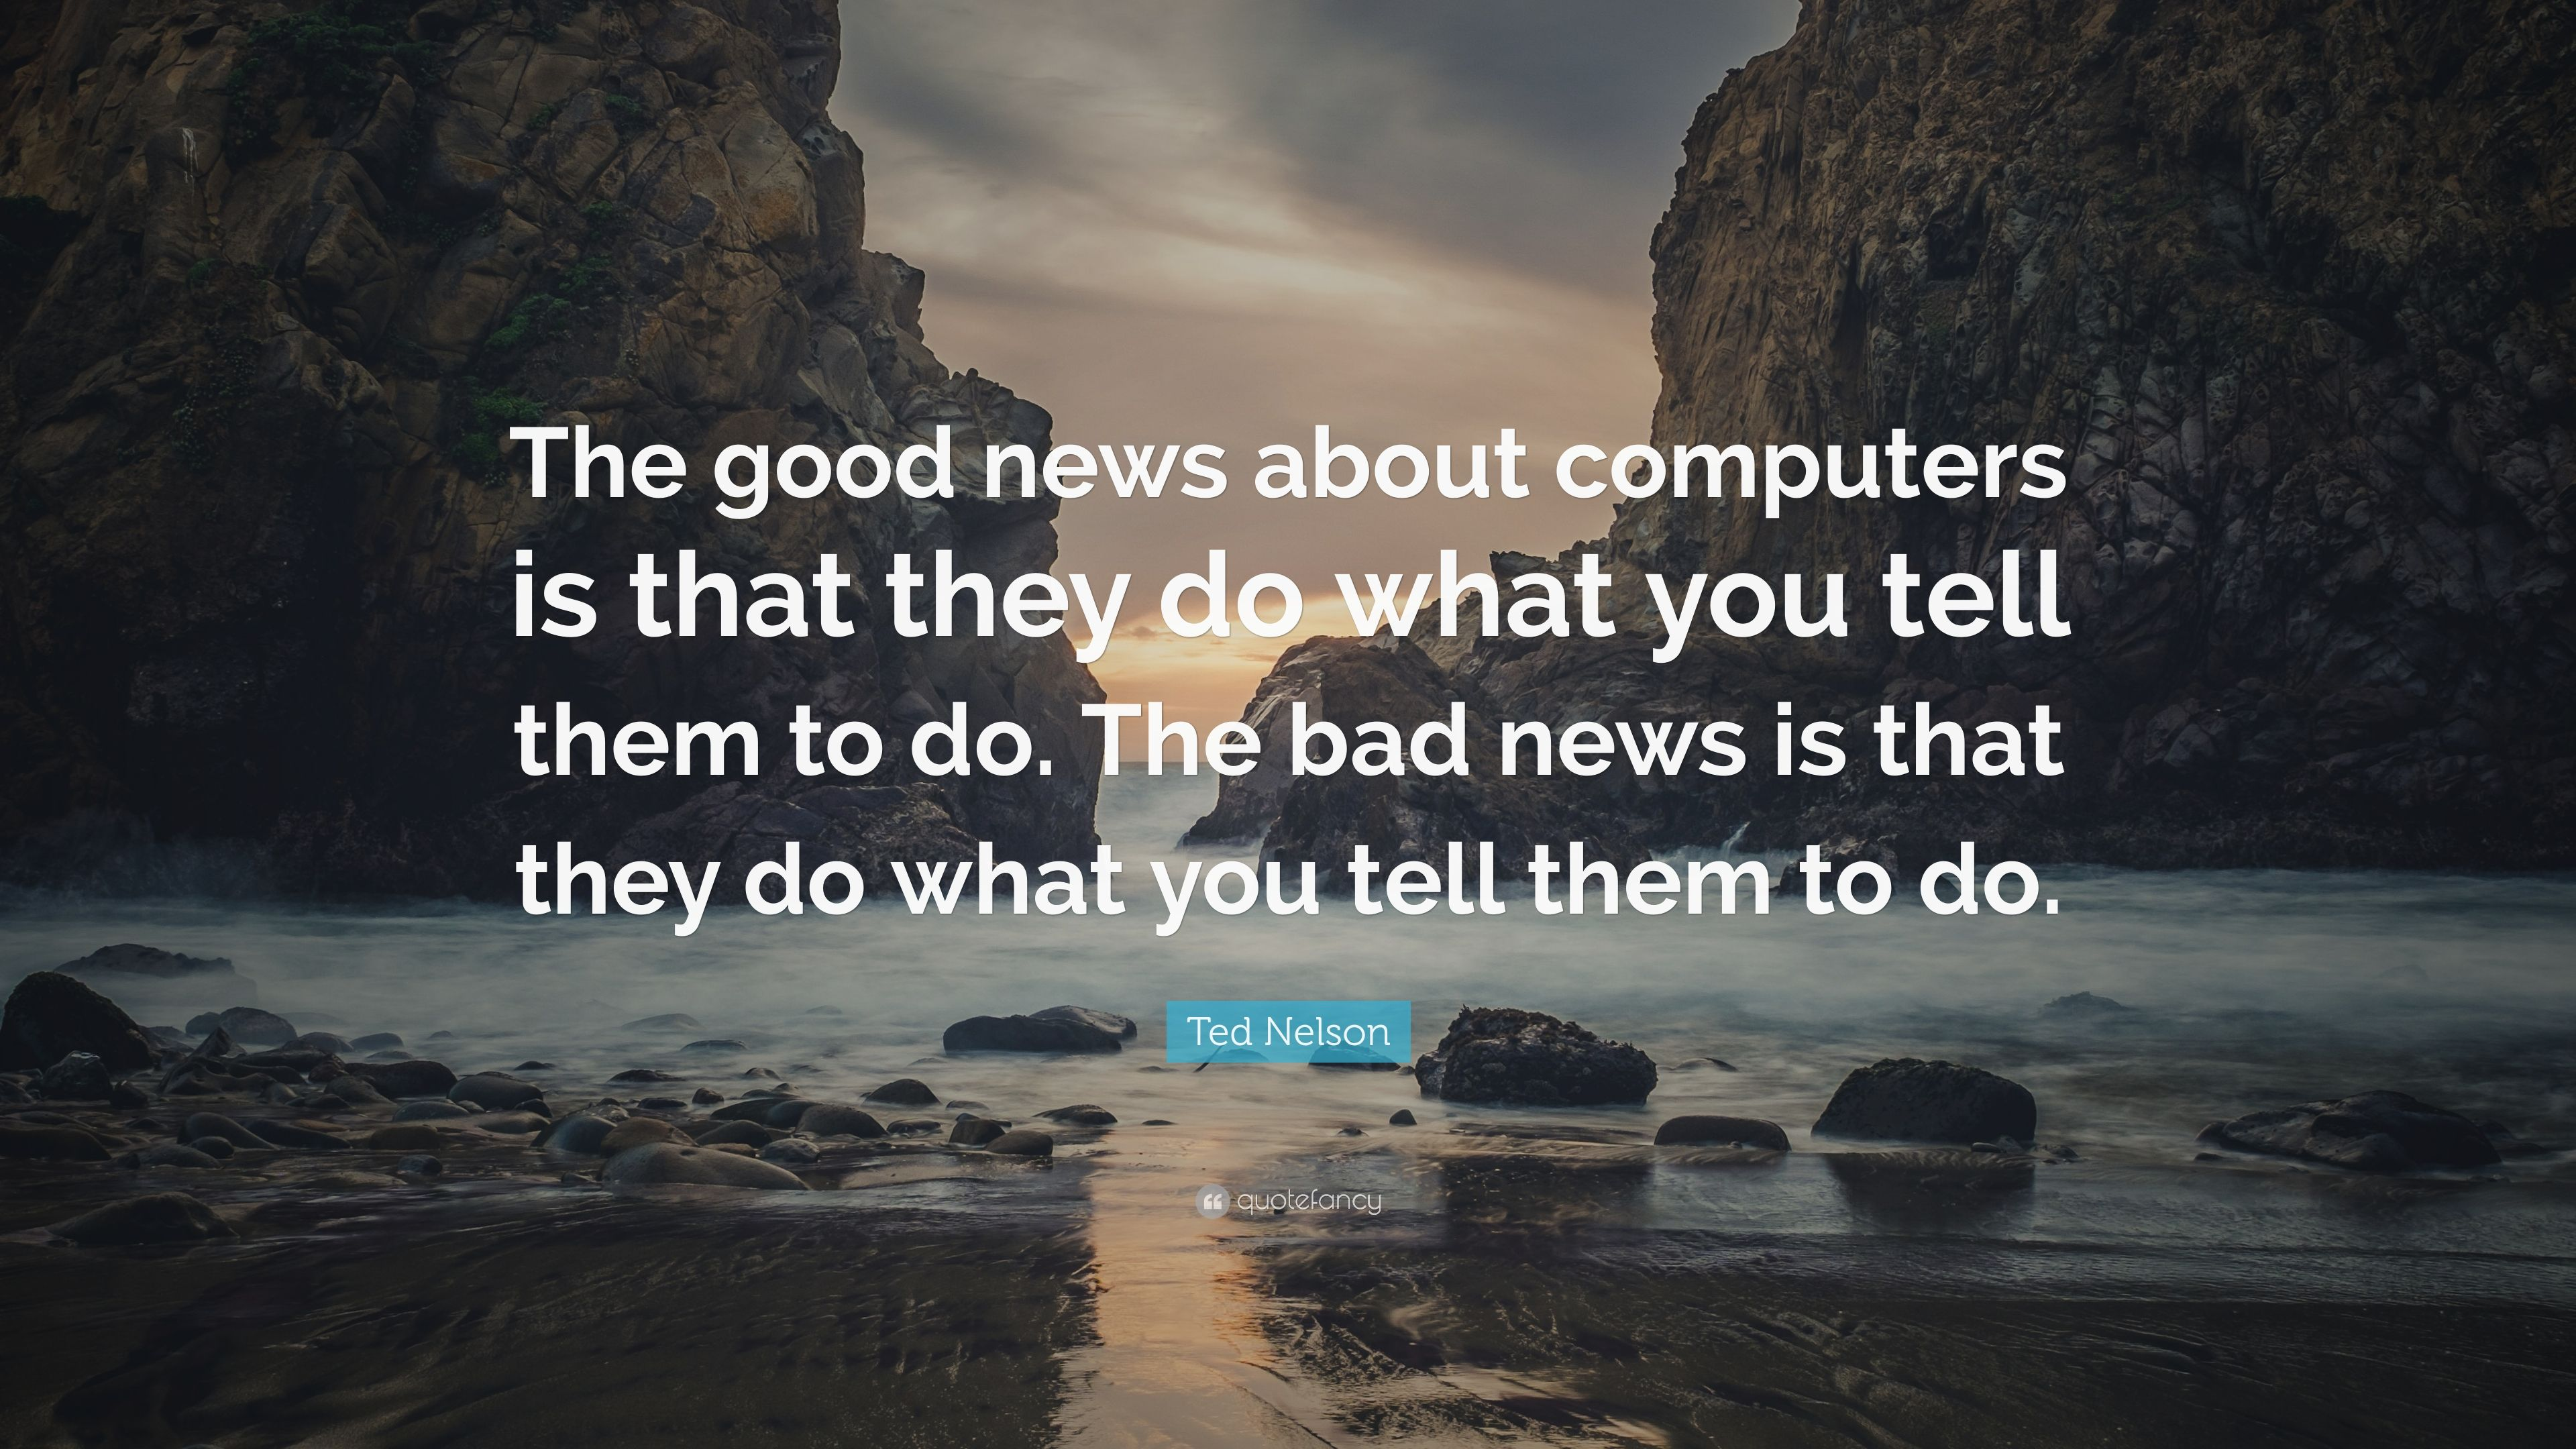 Good News Is That This Morning They >> Ted Nelson Quote The Good News About Computers Is That They Do